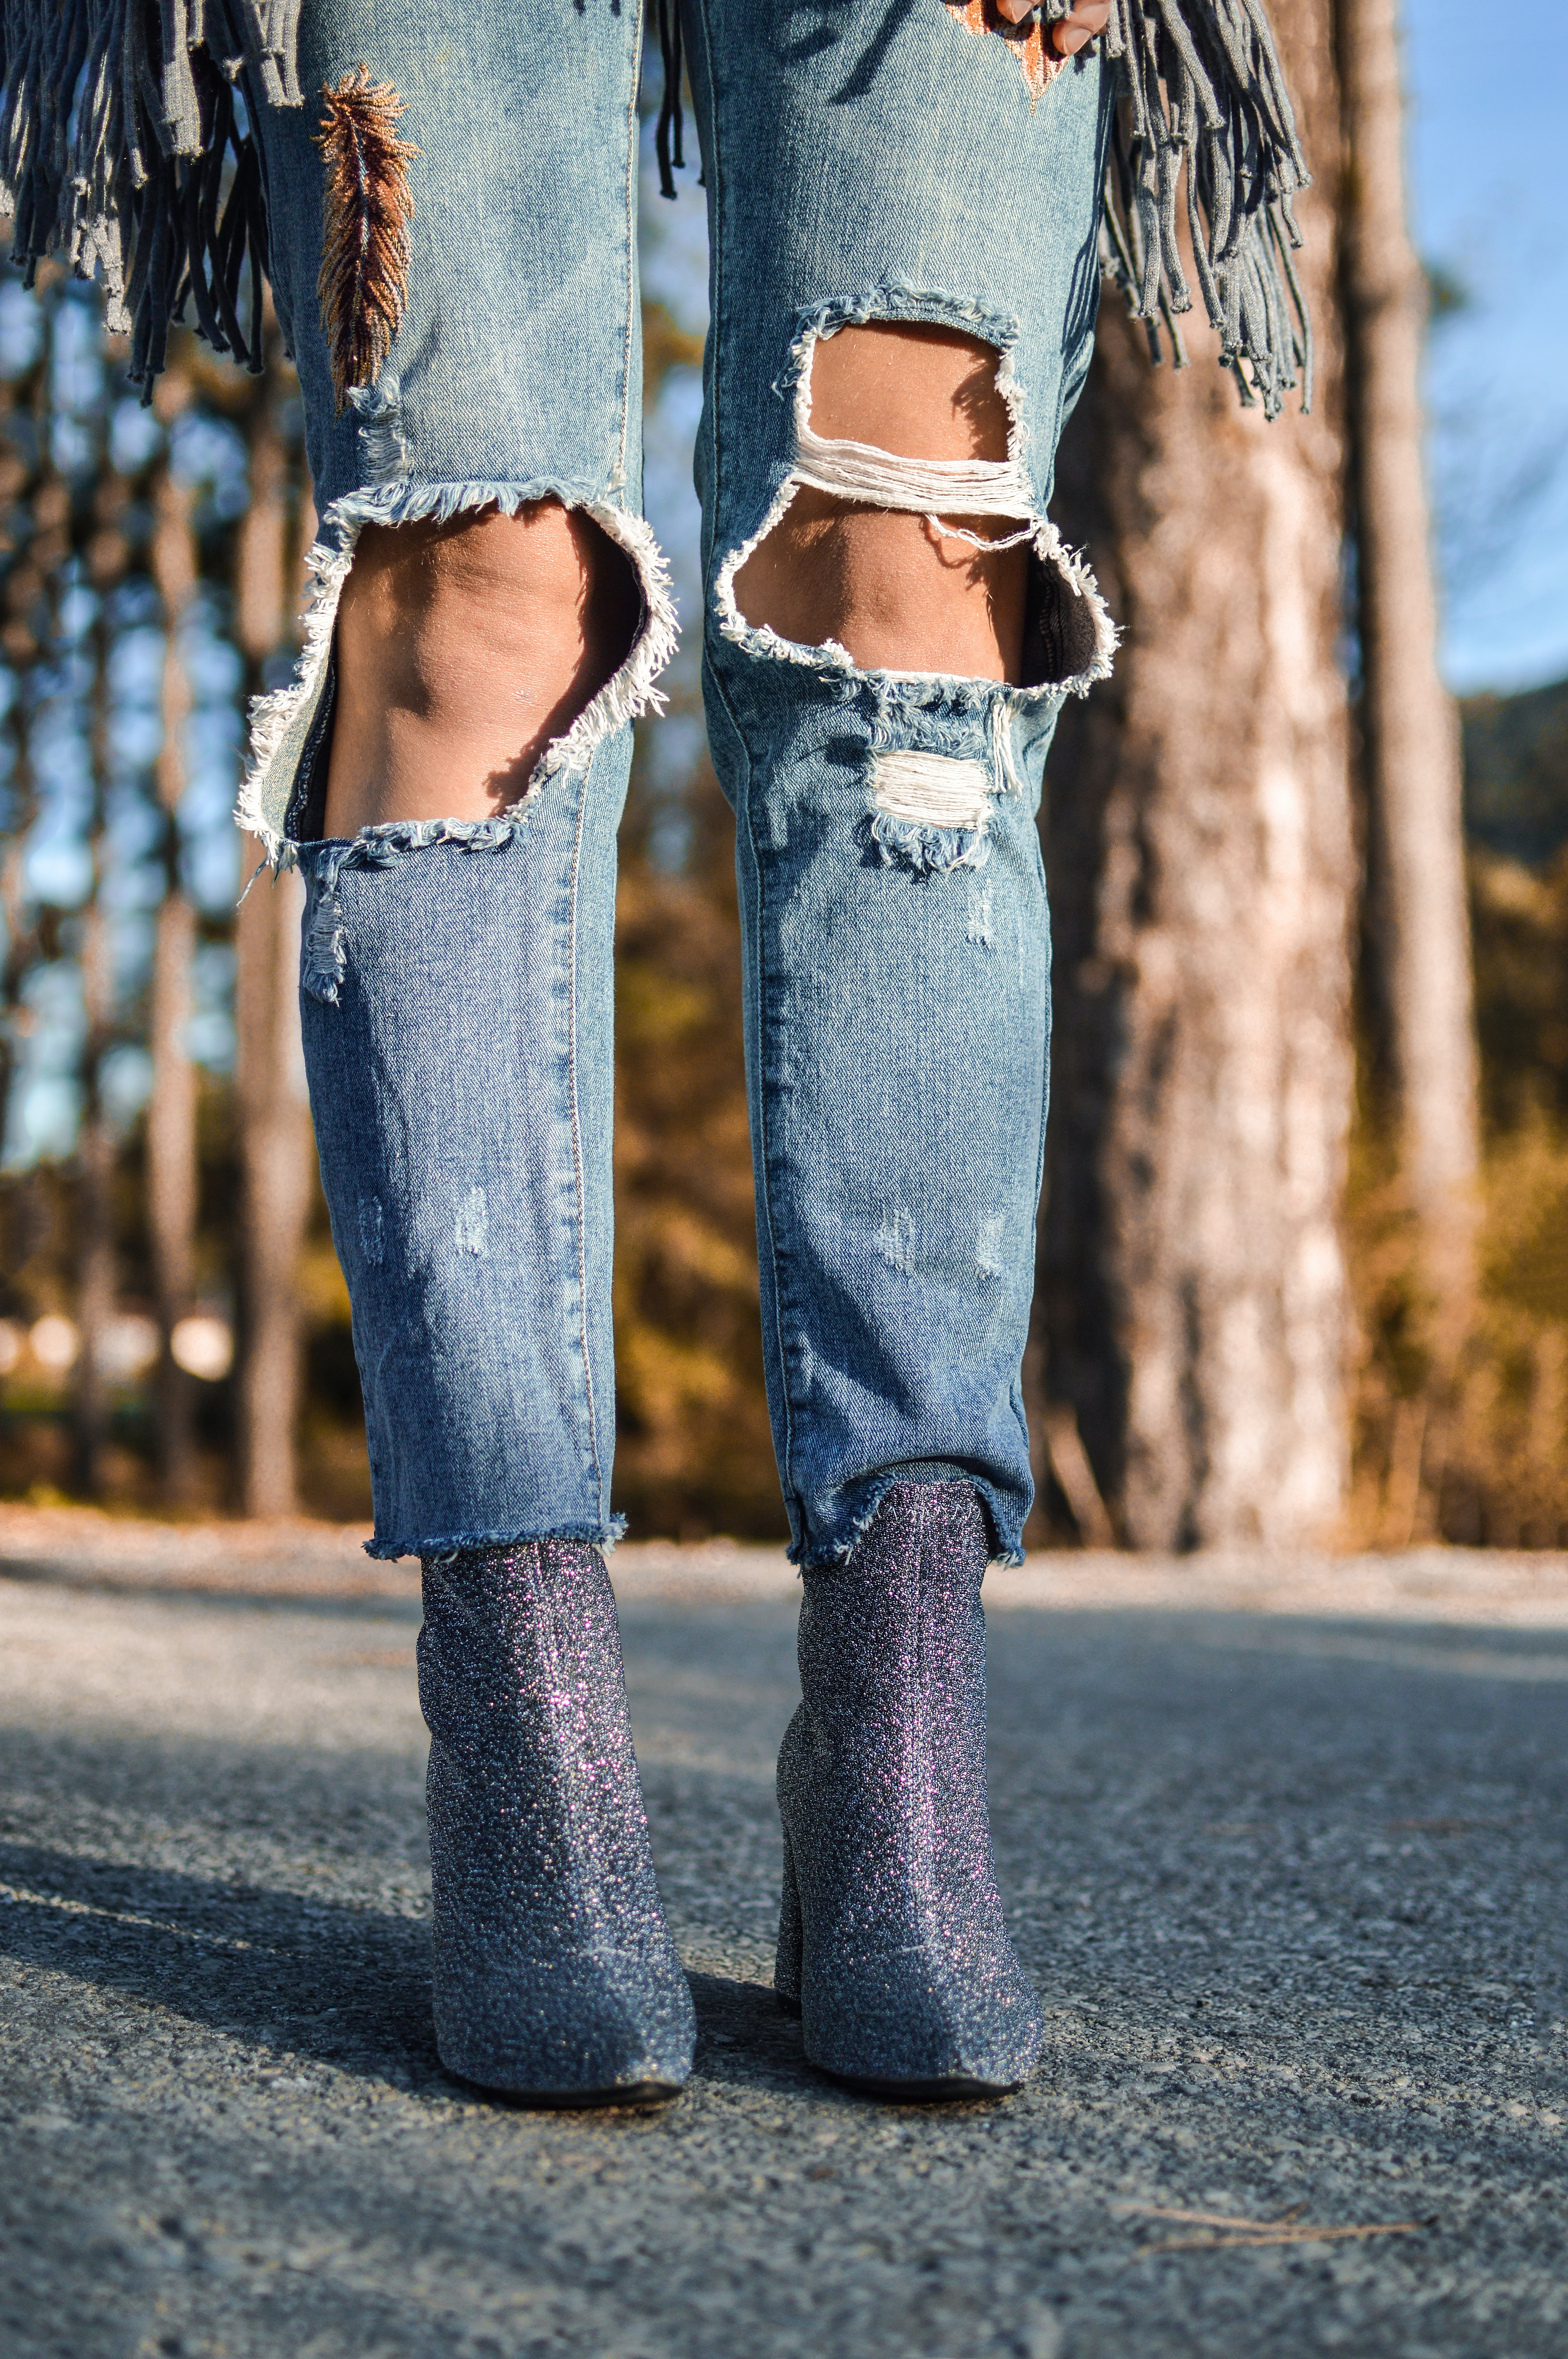 woman wearing distressed blue denim jeans and pair of purple glitter booties